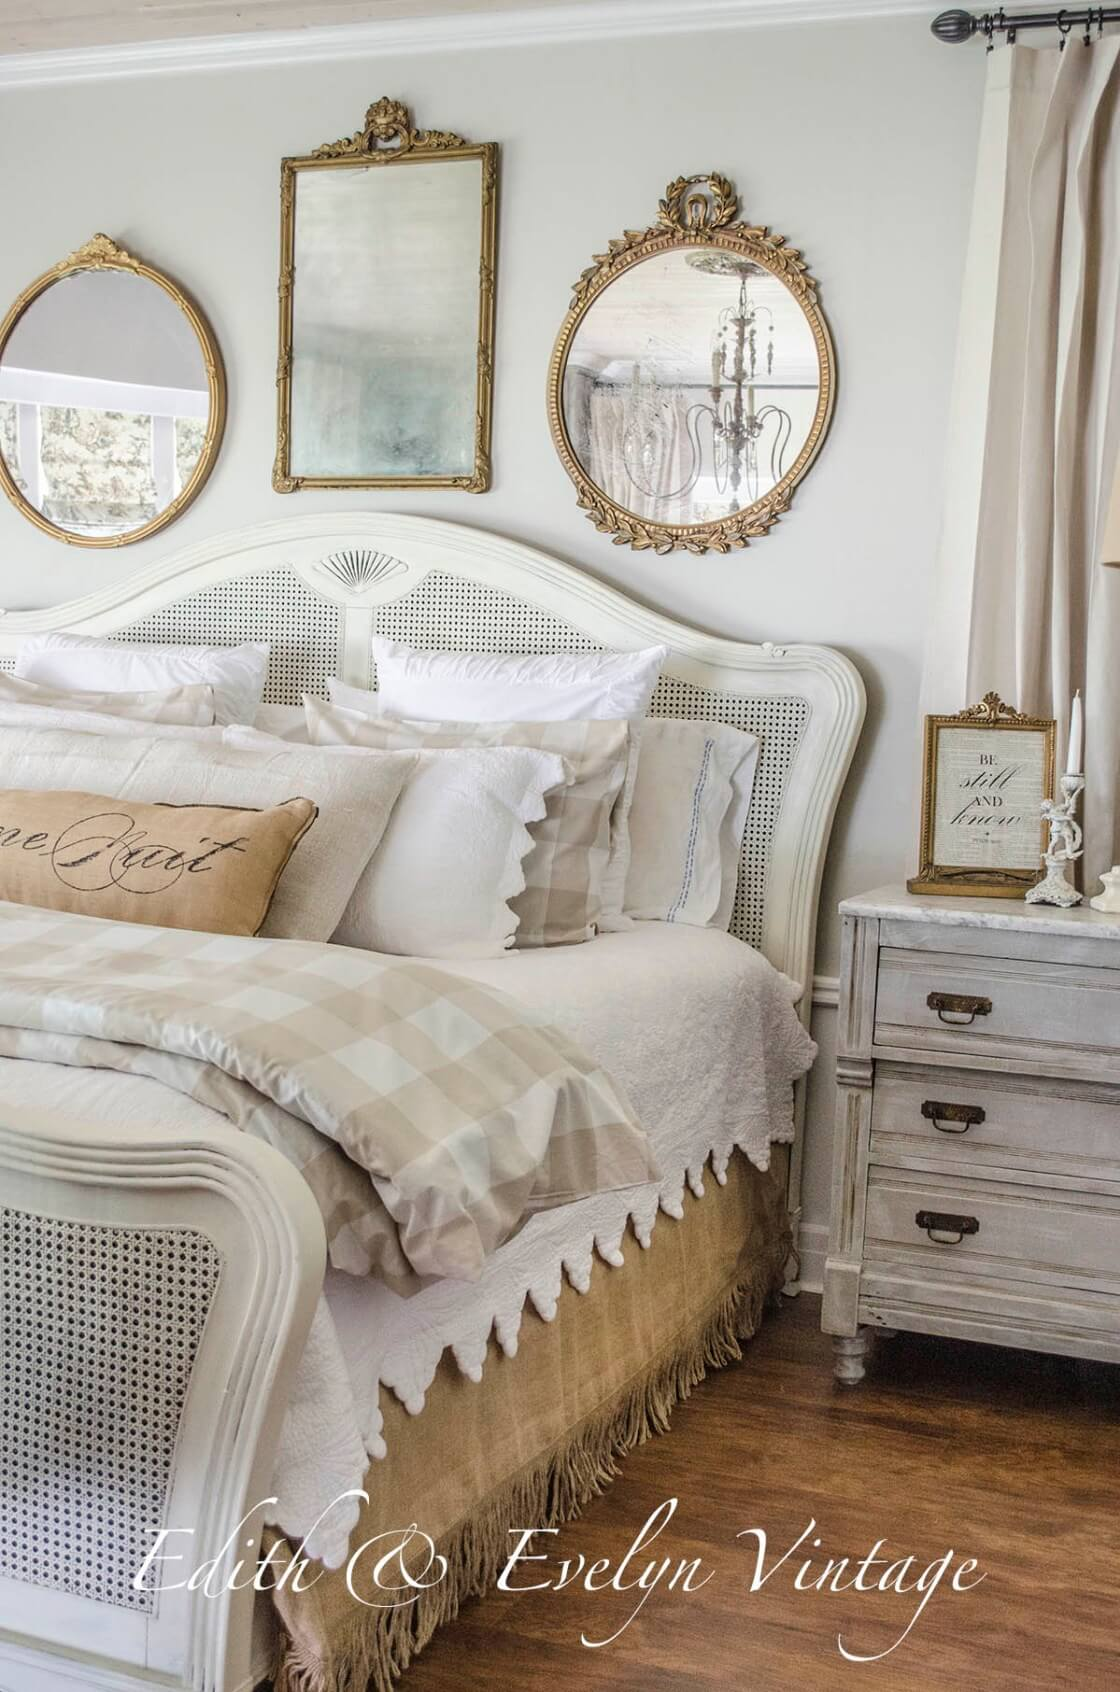 Homebnc & 30 Best French Country Bedroom Decor and Design Ideas for 2019